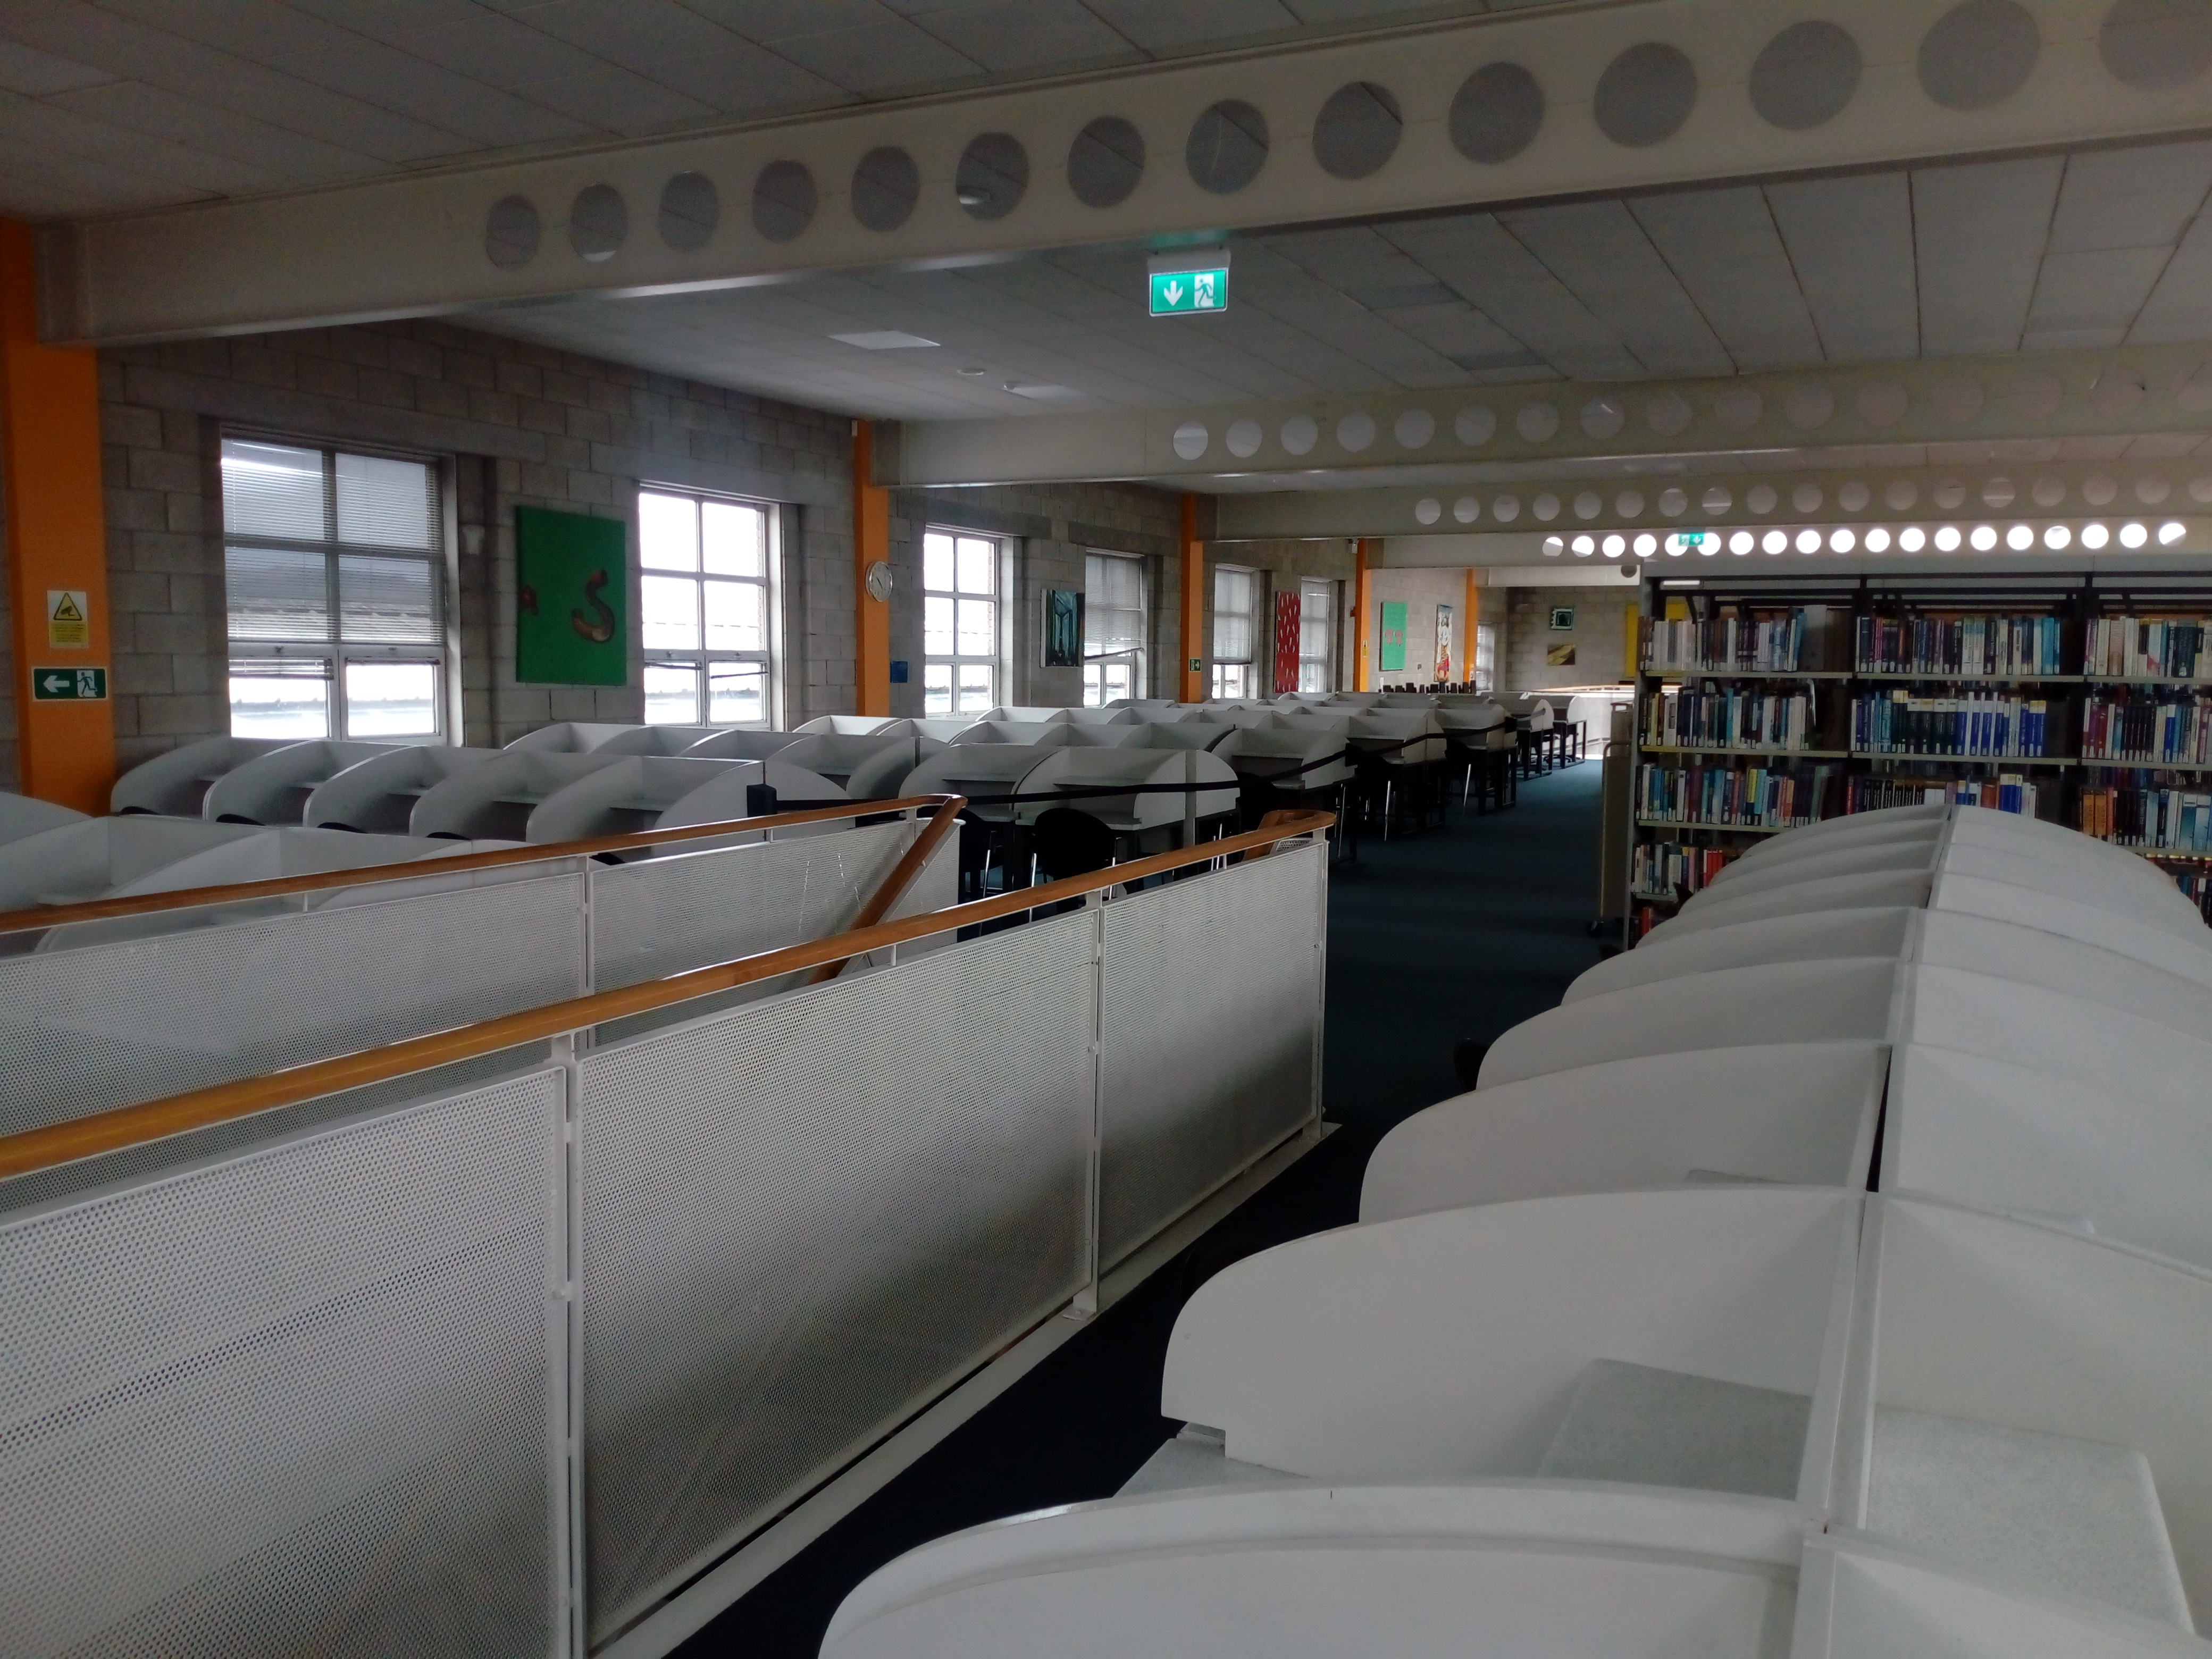 The library upper floor with every seat empty